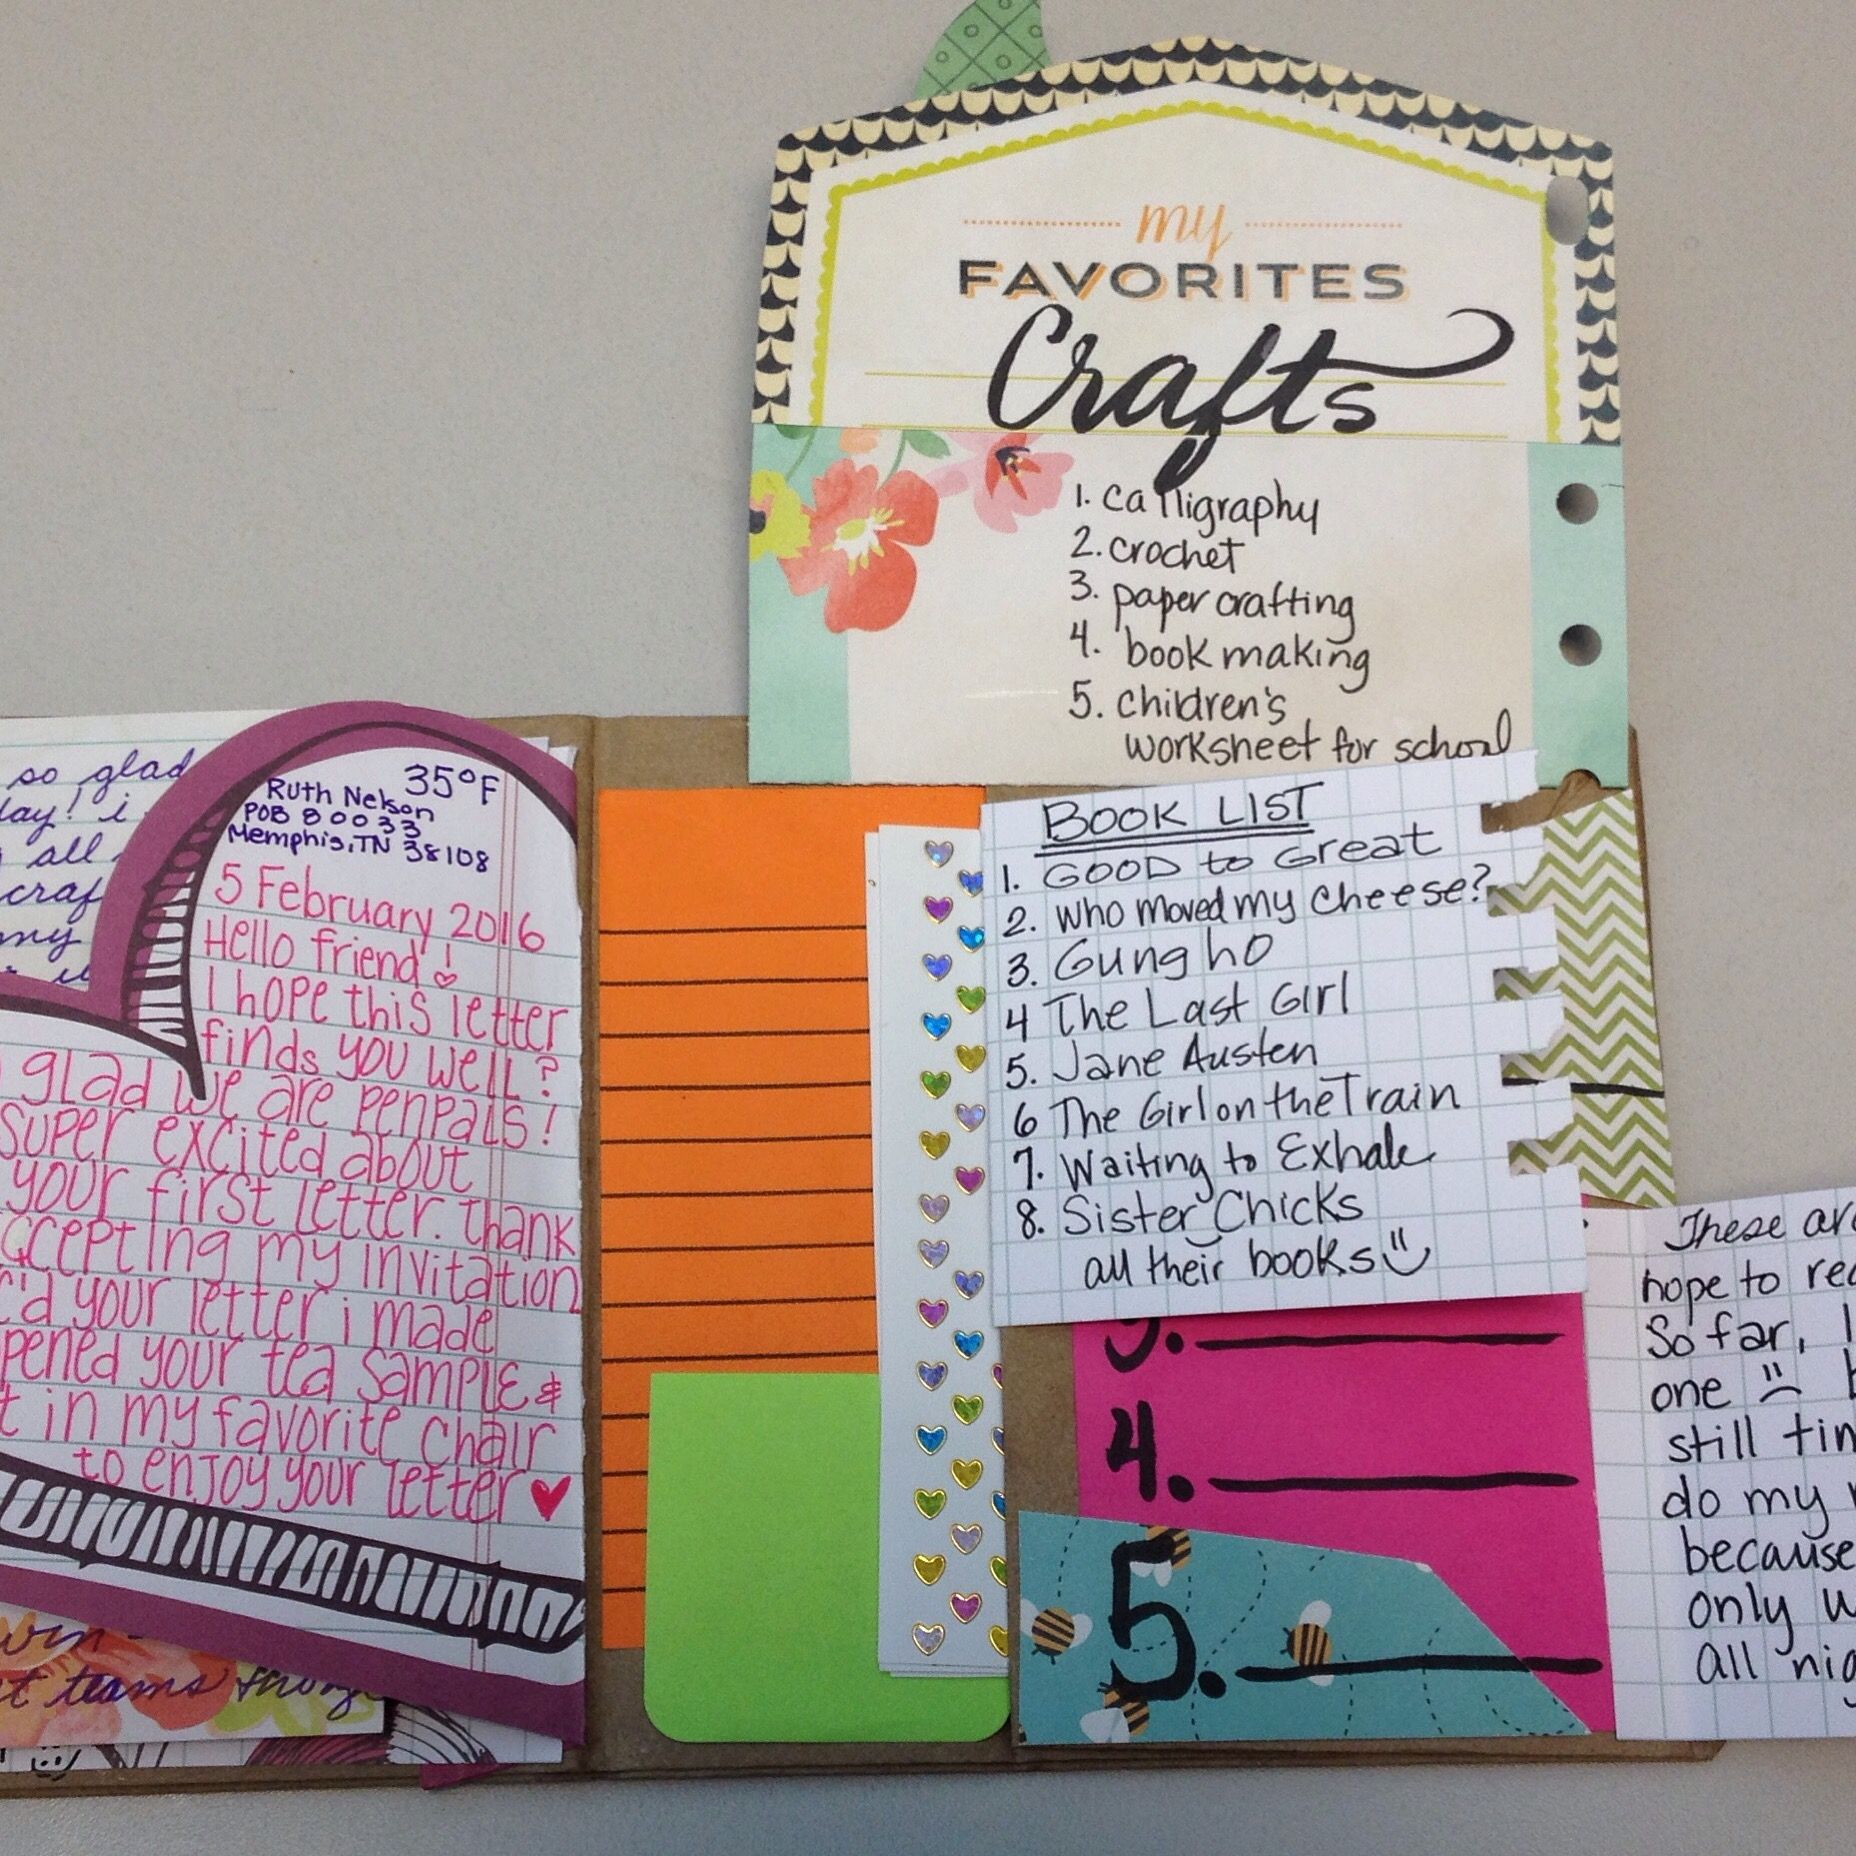 Pin By Lillibet Lugo On Happy Mail Flipbook Pen Pal Letters Snail Mail Pen Pals Book Making